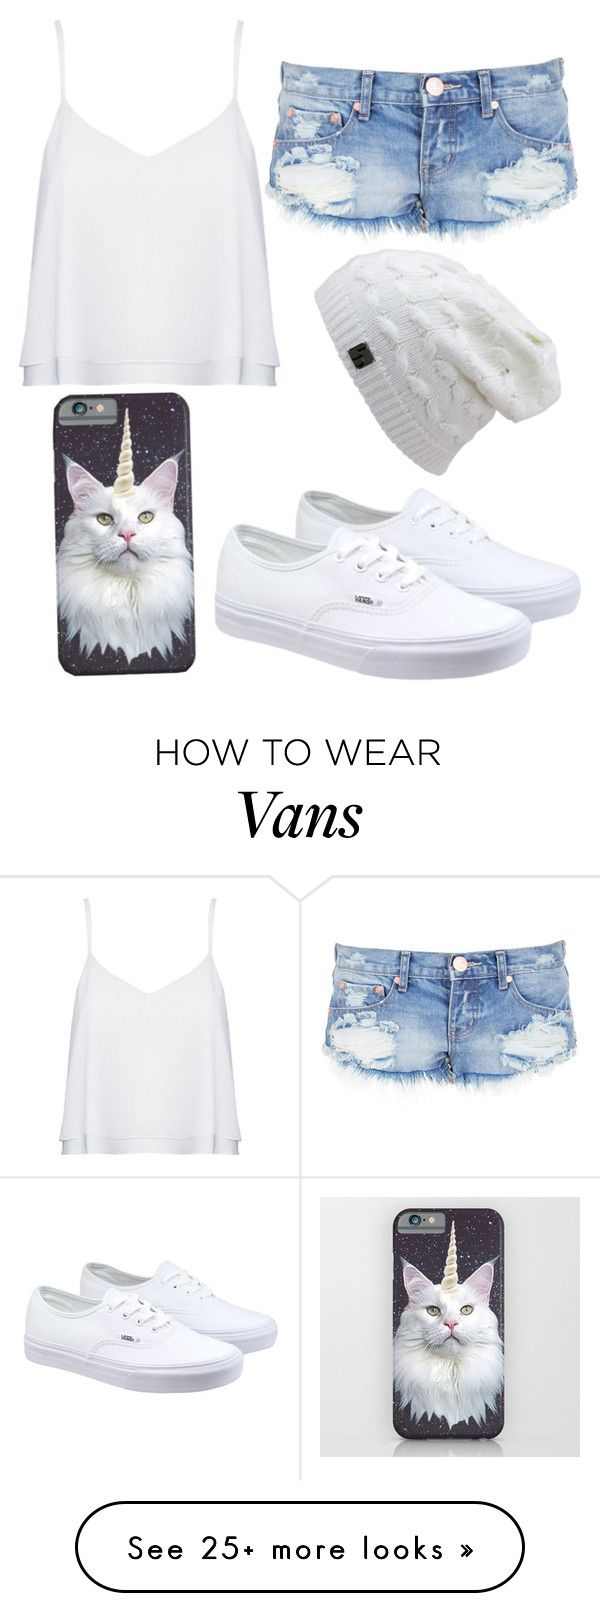 """Normal day"" by fashforfunfff on Polyvore featuring Alice + Olivia, One Teaspoon, Vans, women's clothing, women's fashion, women, female, woman, misses and juniors"